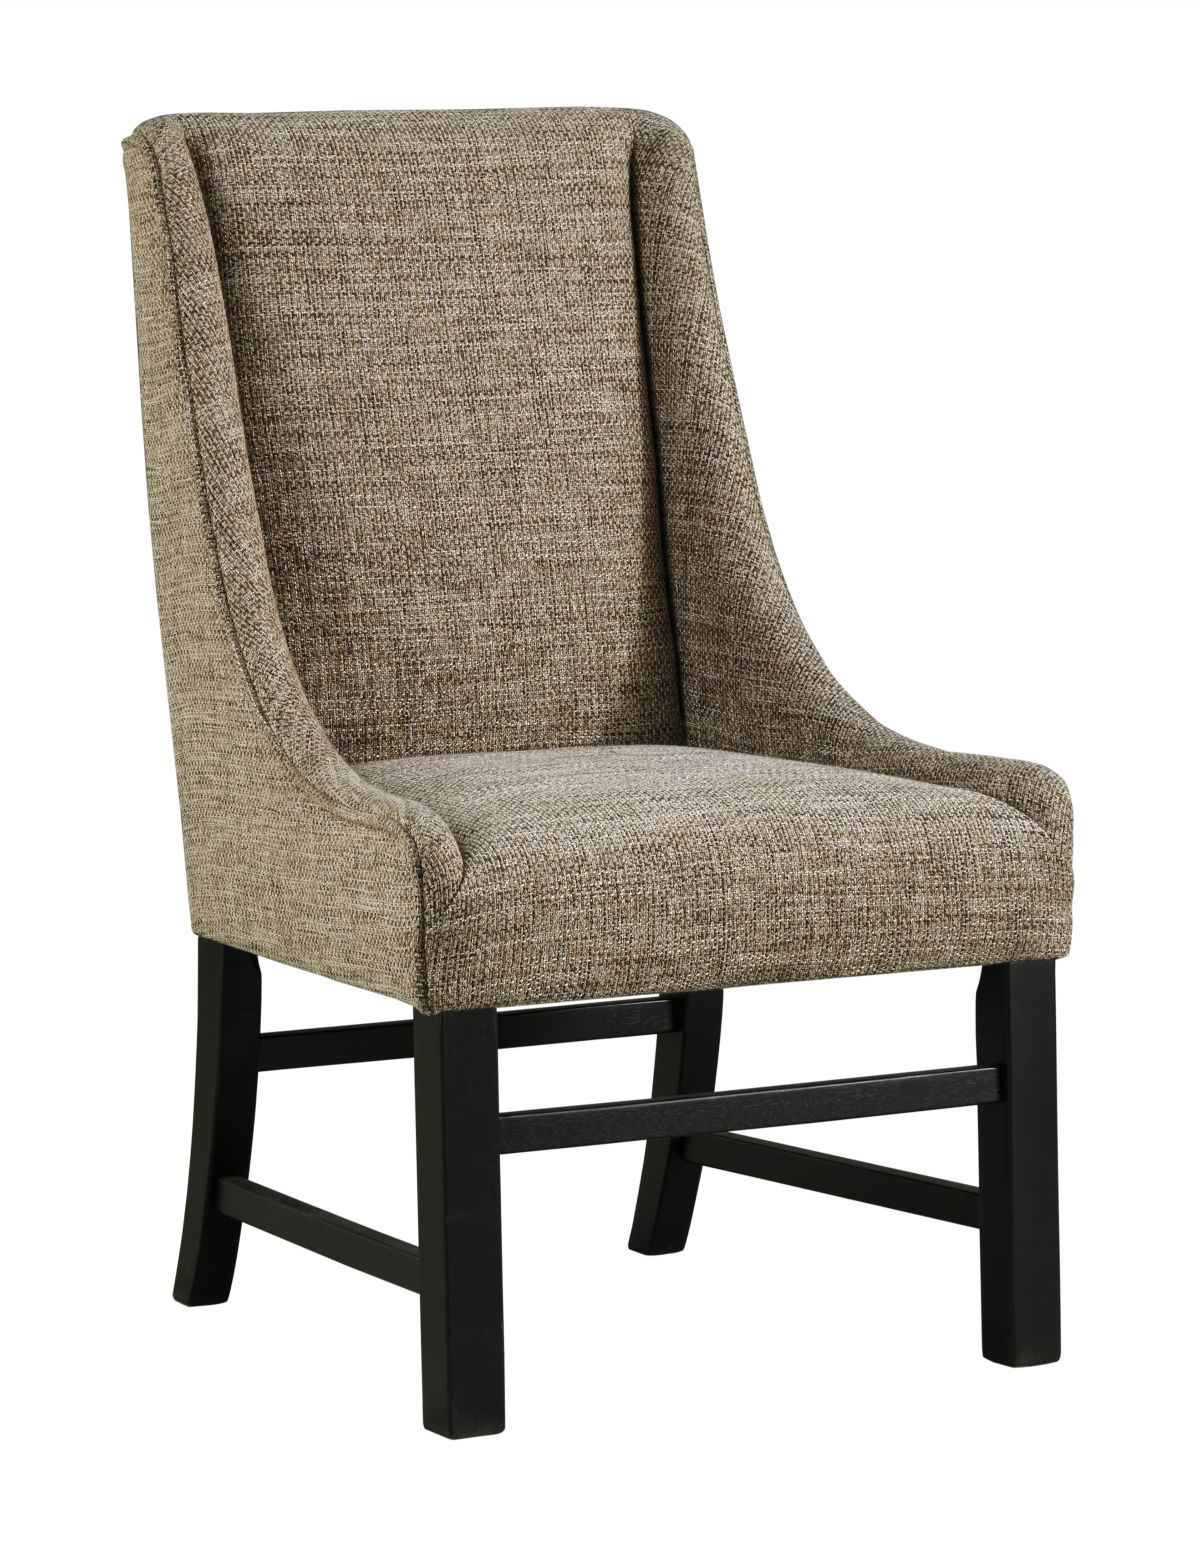 Picture of Sommerford Arm Chair